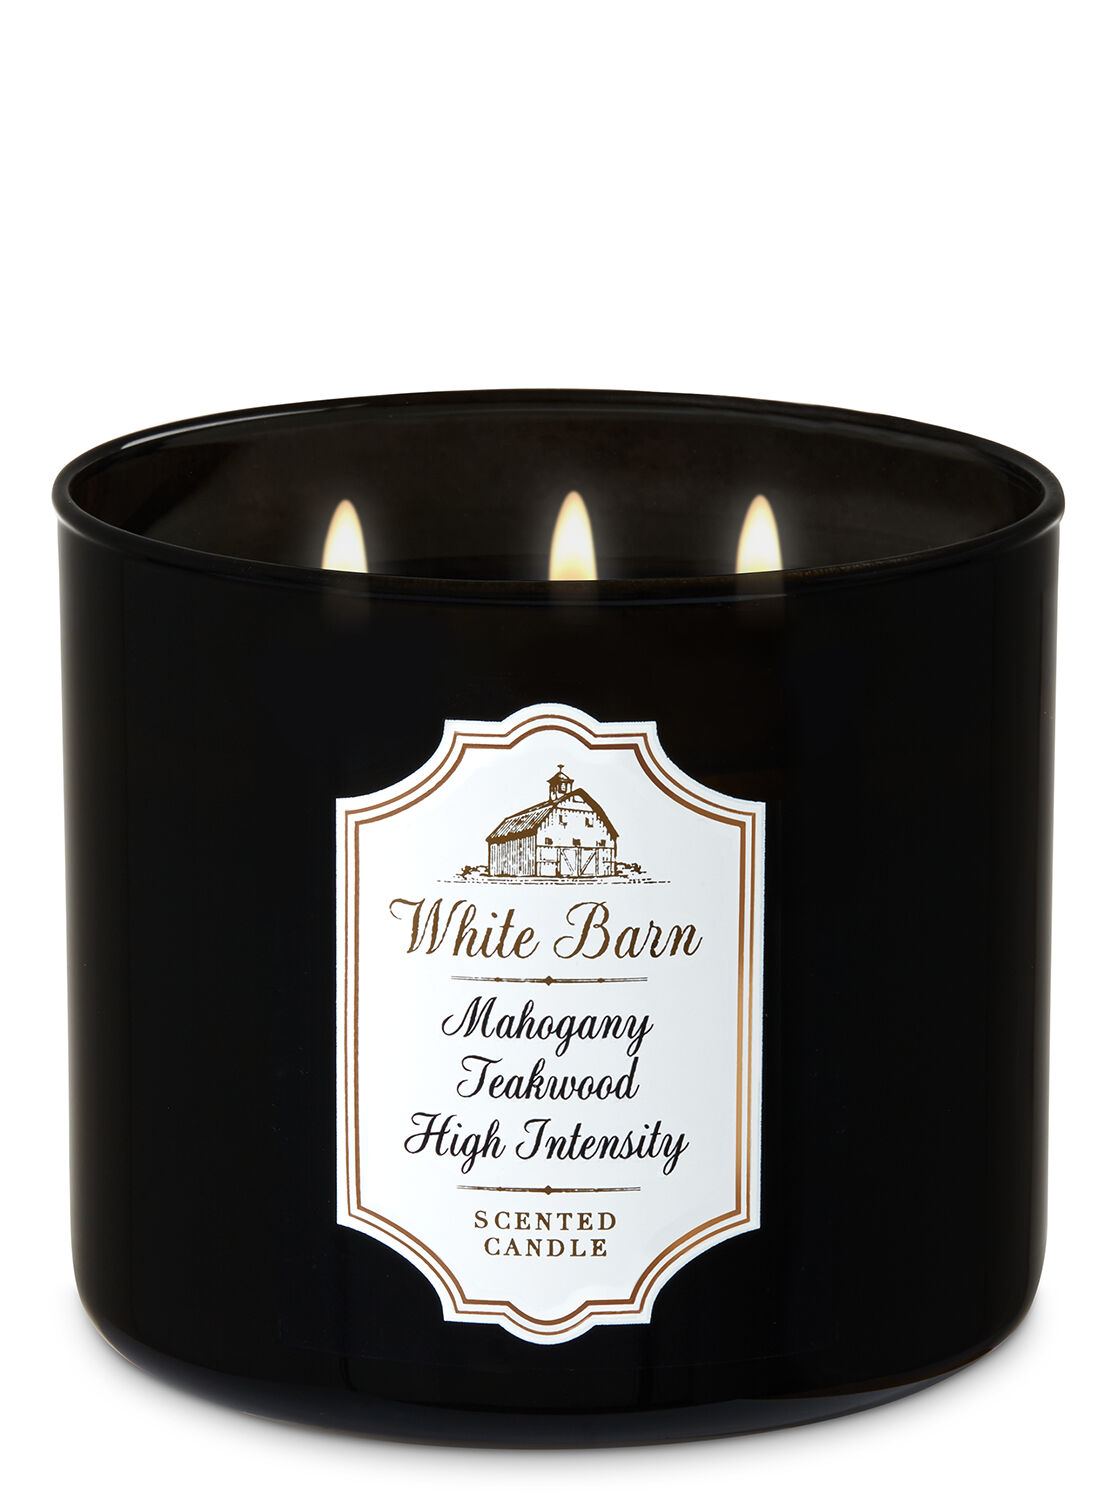 Mahogany Teakwood High Intensity 3-Wick Candle - White Barn | Bath & Body  Works